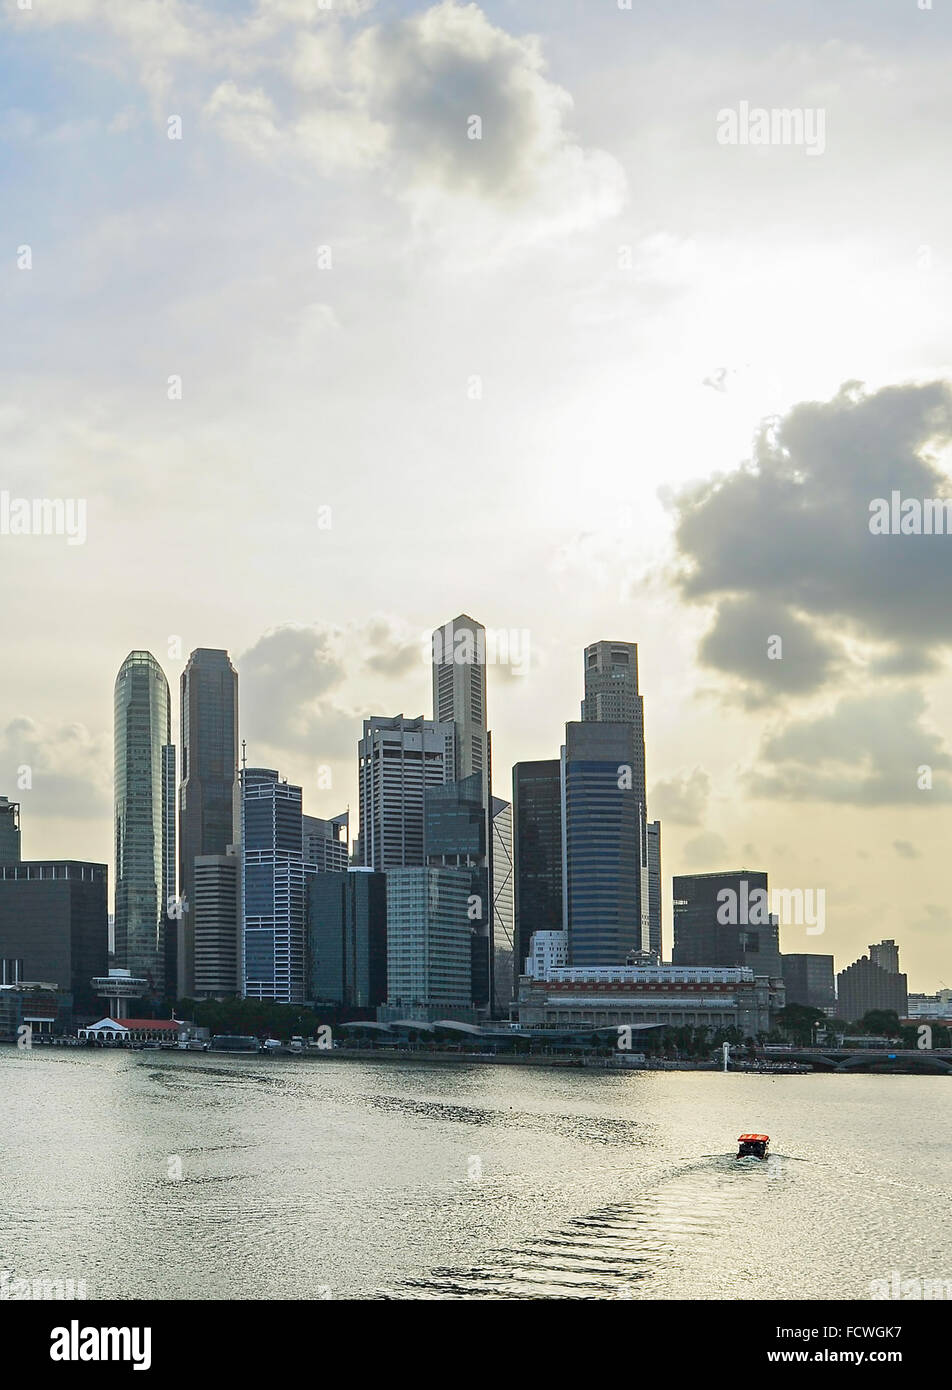 Skyline of Singapore bay with famous Downton Core at sunset. - Stock Image